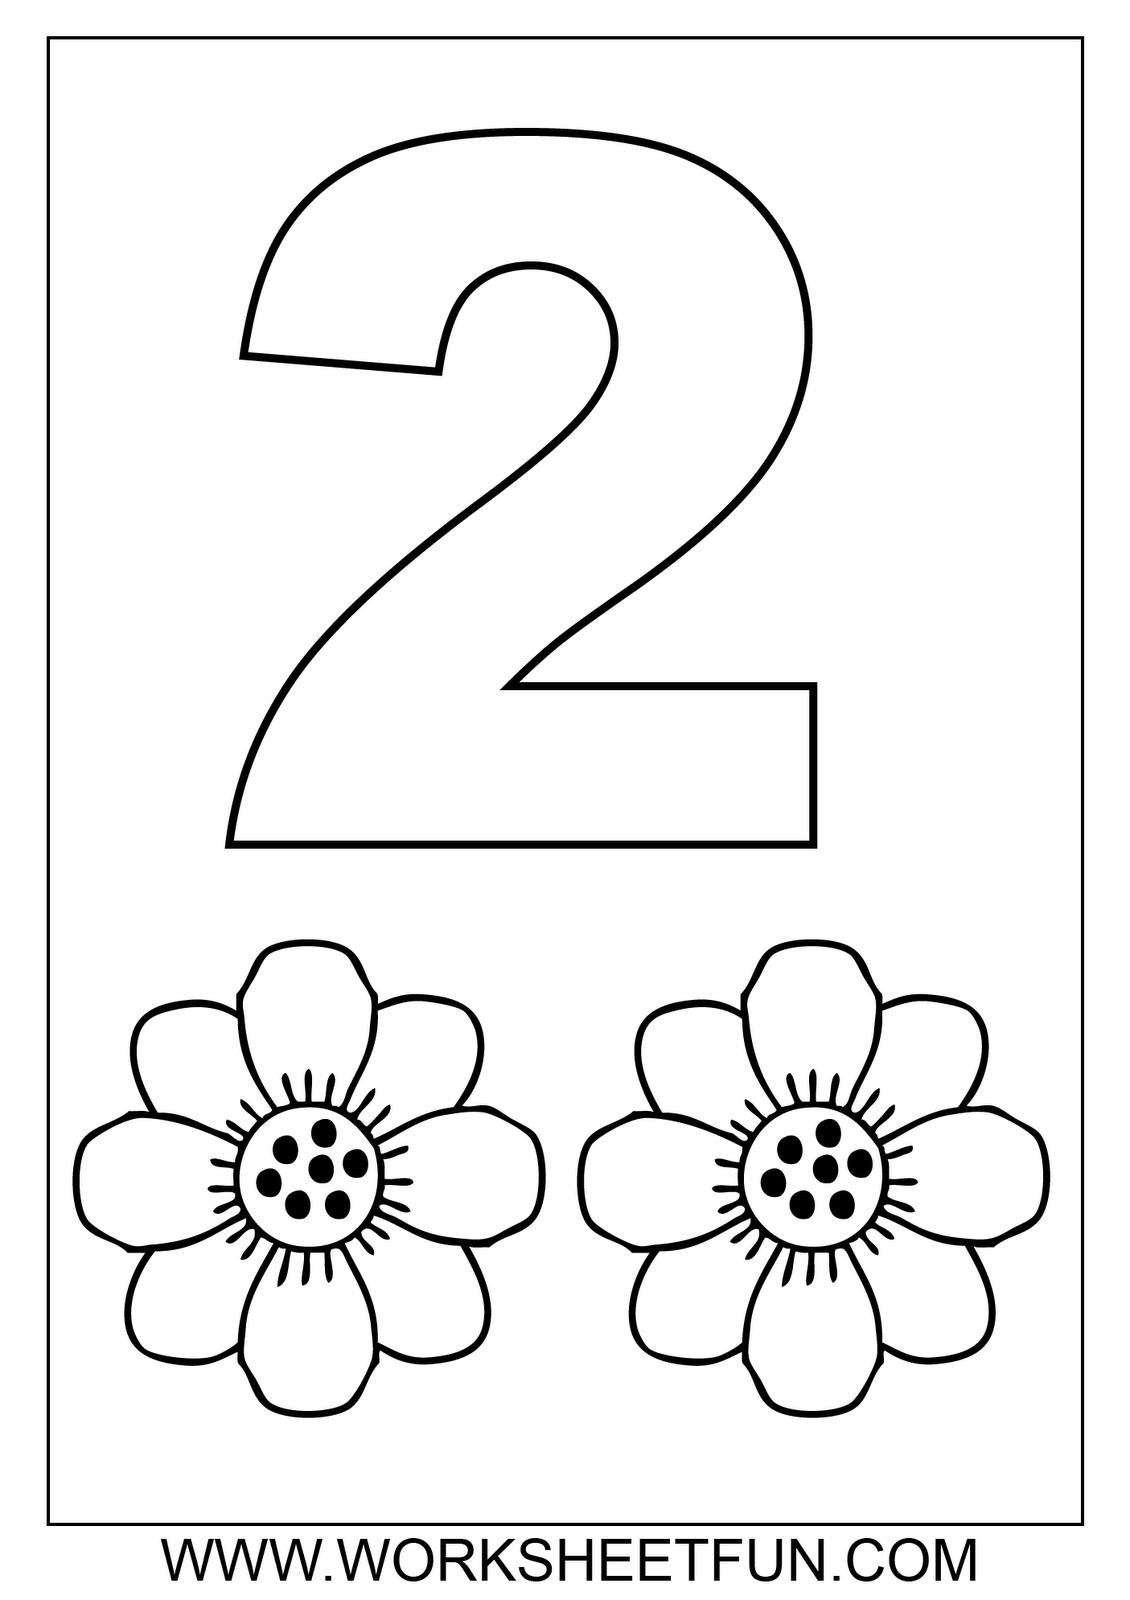 free math worksheets-number coloring | number | Pinterest | Free ...